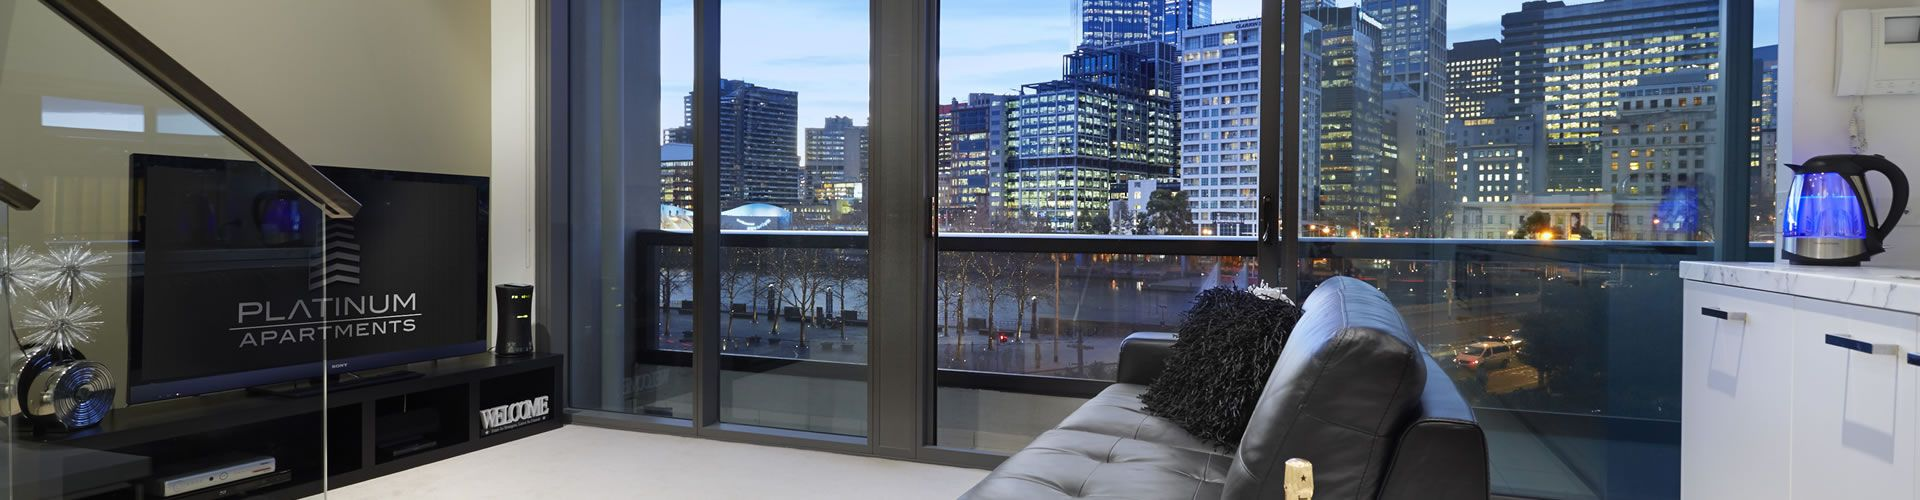 Luxury Melbourne Holiday Accommodation Here At Platinum Apartments We Understand What Makes A Apartment Right For You